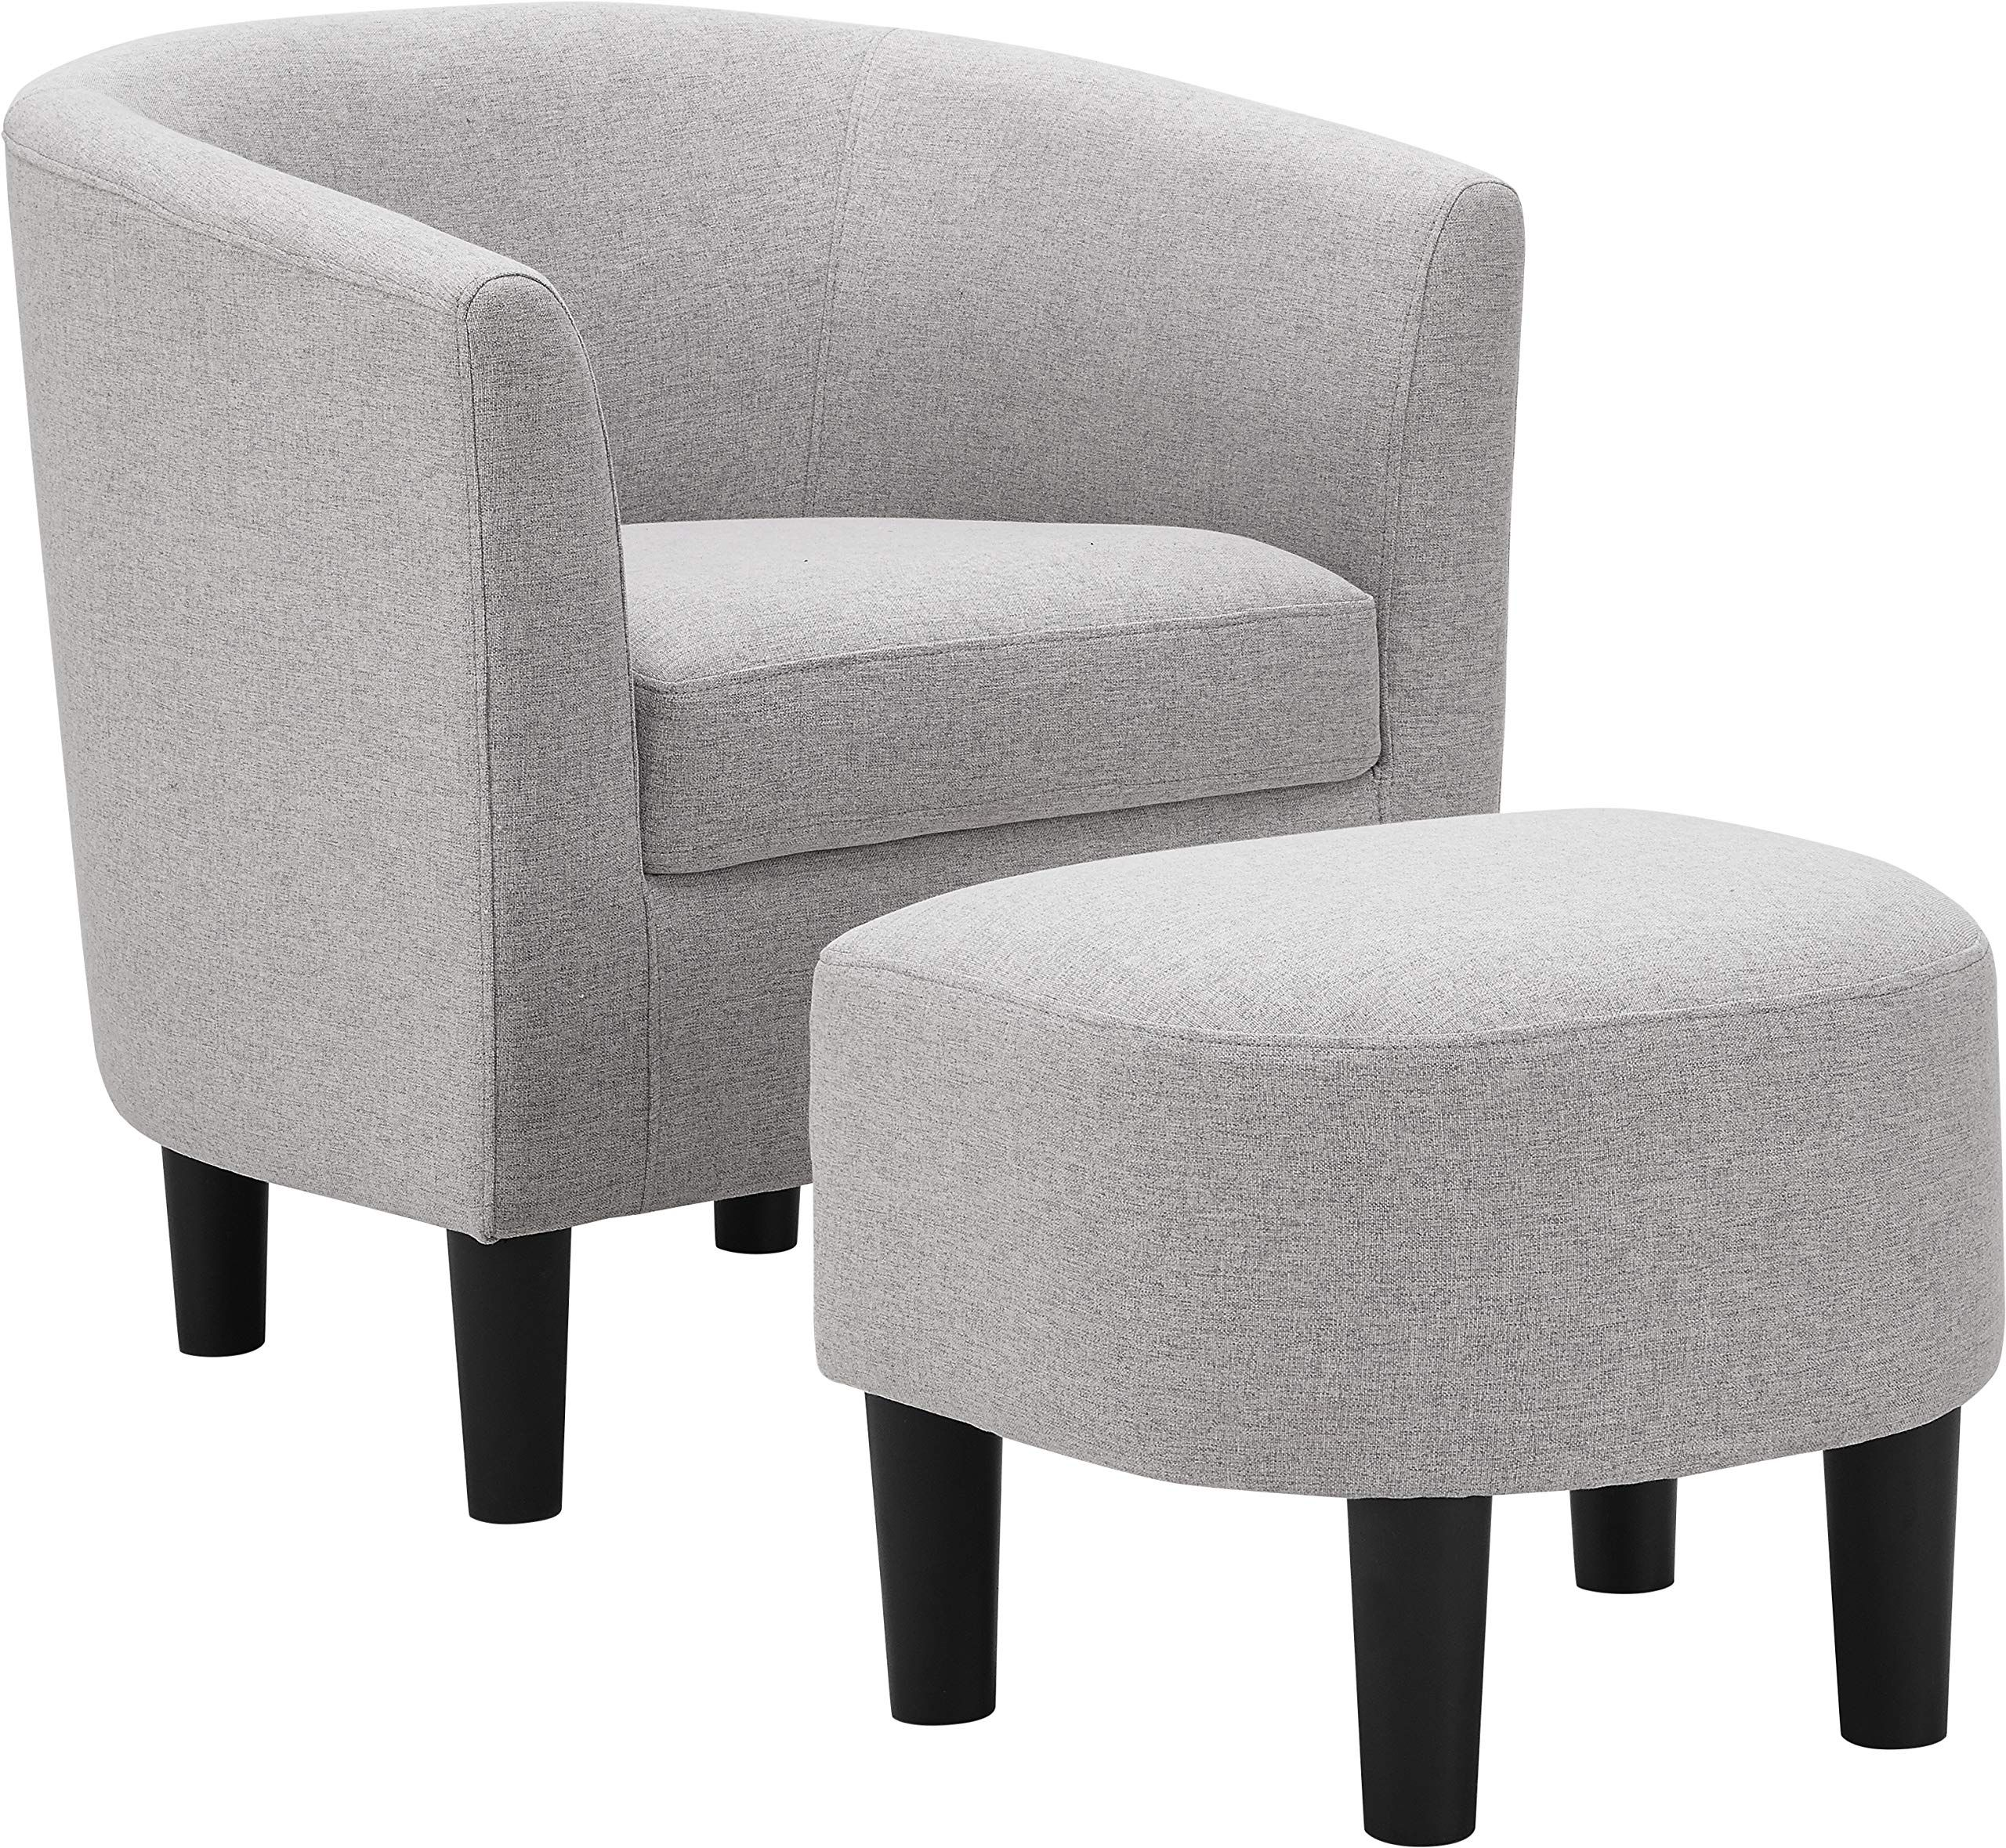 Dazone Modern Accent Chair Upholstered Comfy Arm Chair Linen